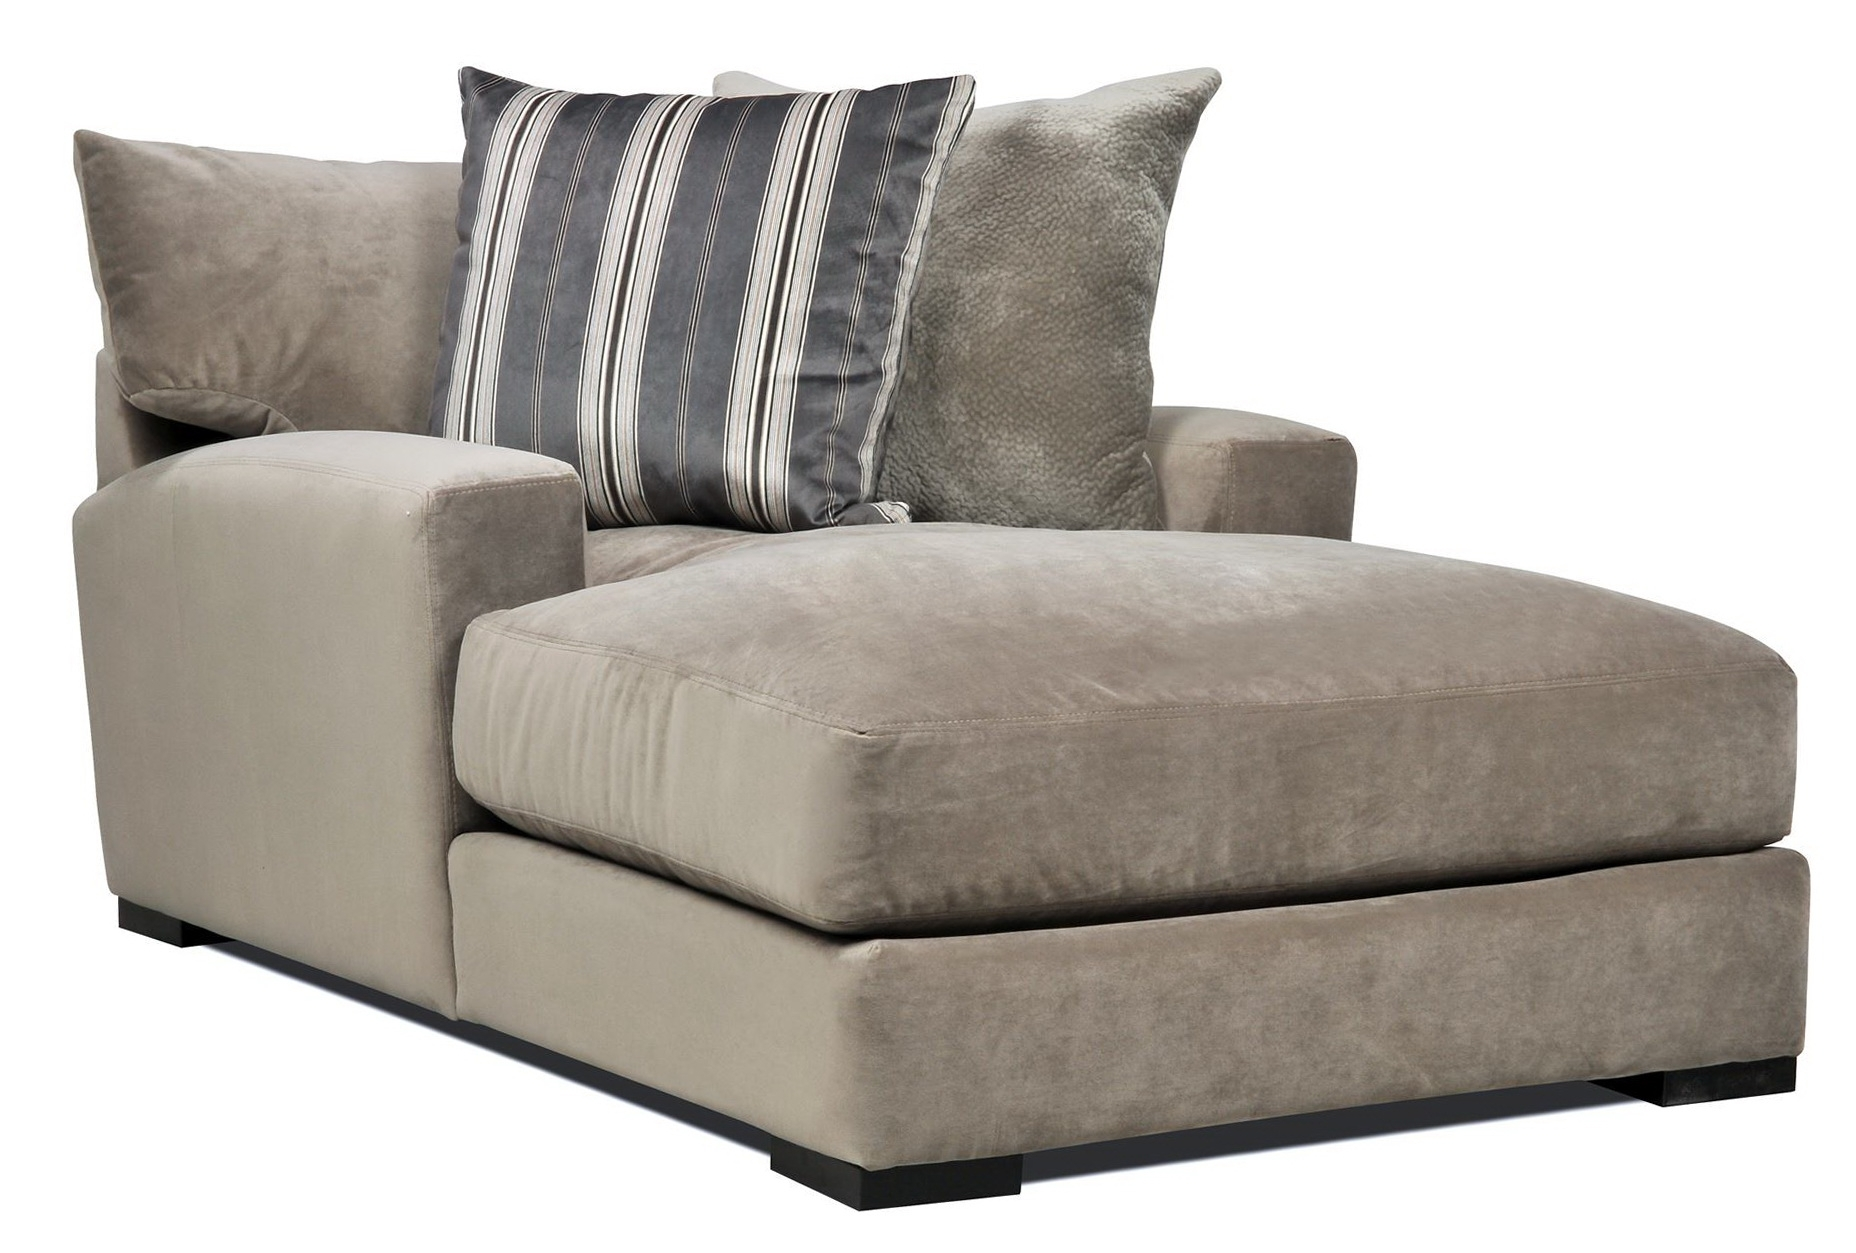 Most Current High End Chaise Lounge Chairs Throughout Double Wide Chaise Lounge Indoor With 2 Cushions (View 4 of 15)